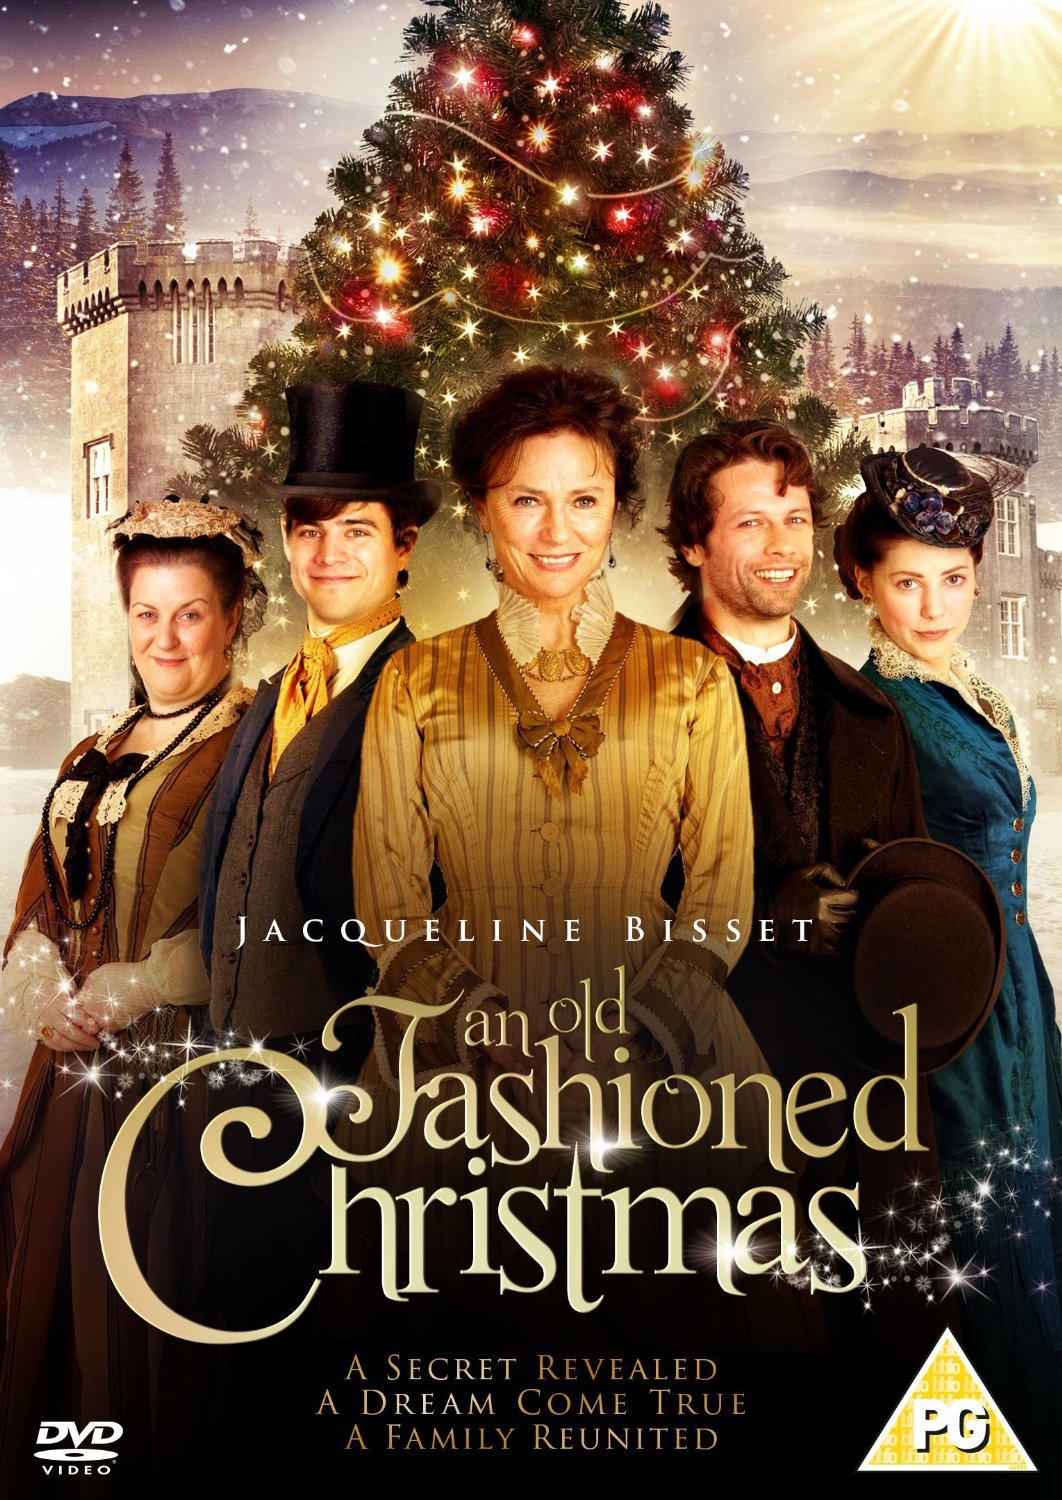 Amazon.com: An Old Fashioned Christmas [DVD]: Jacqueline Bisset ...